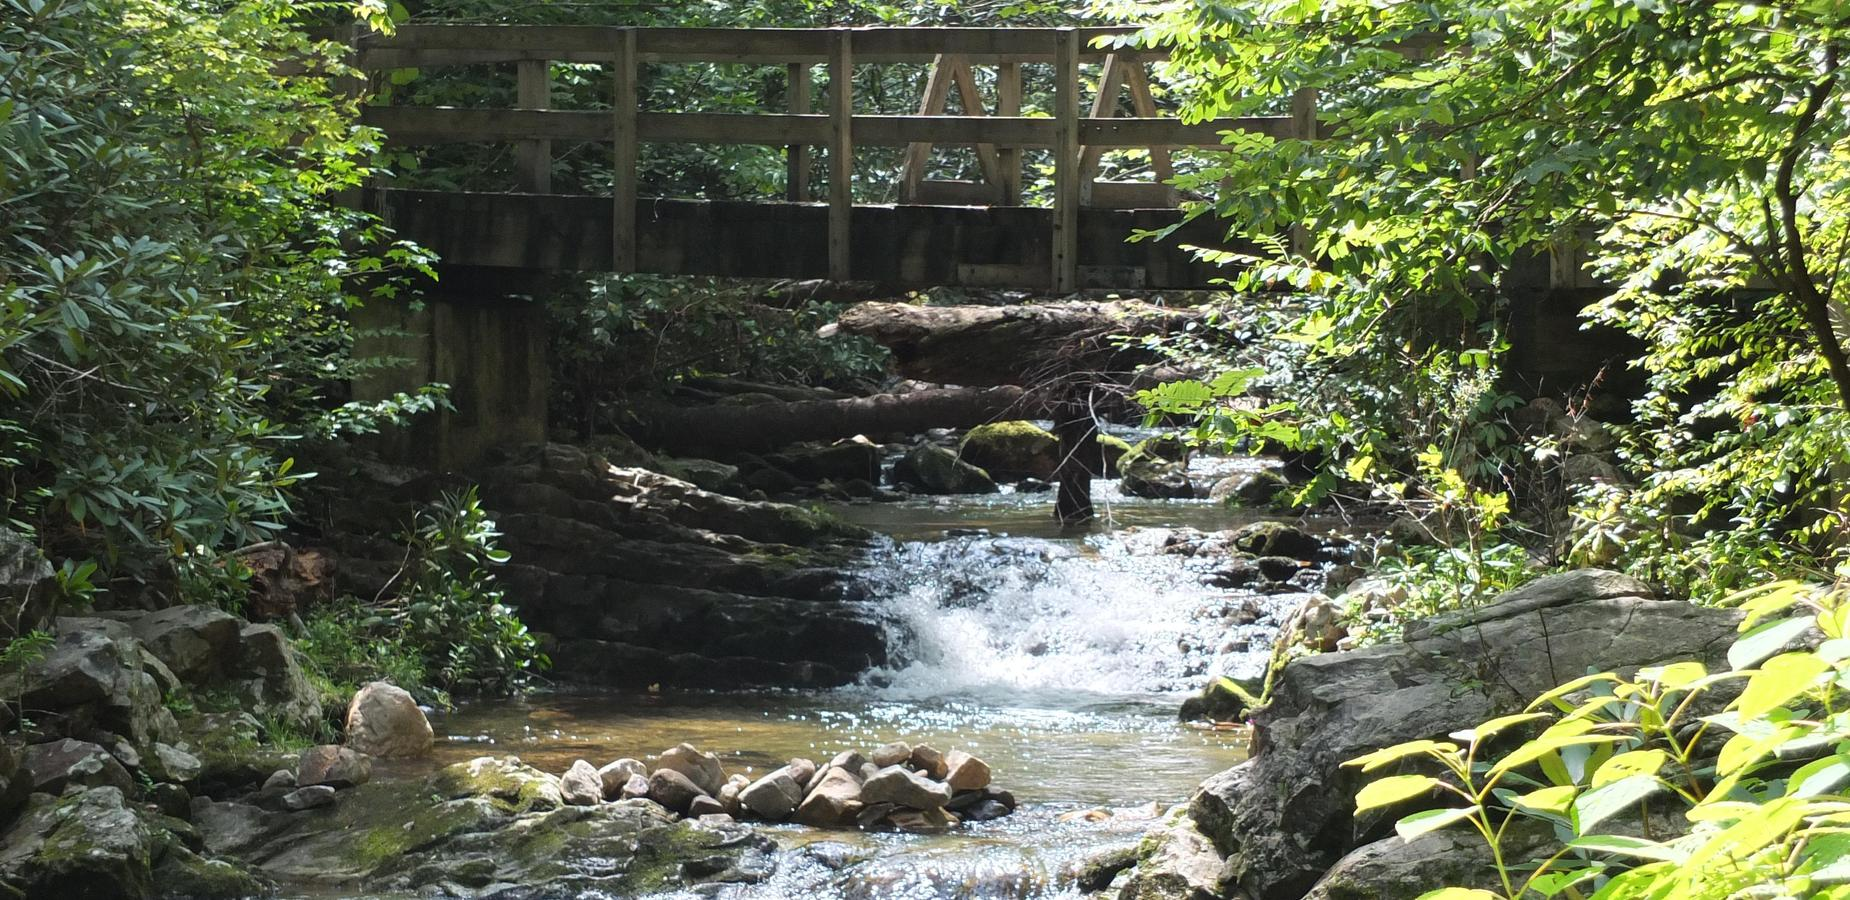 Creek in Greene County